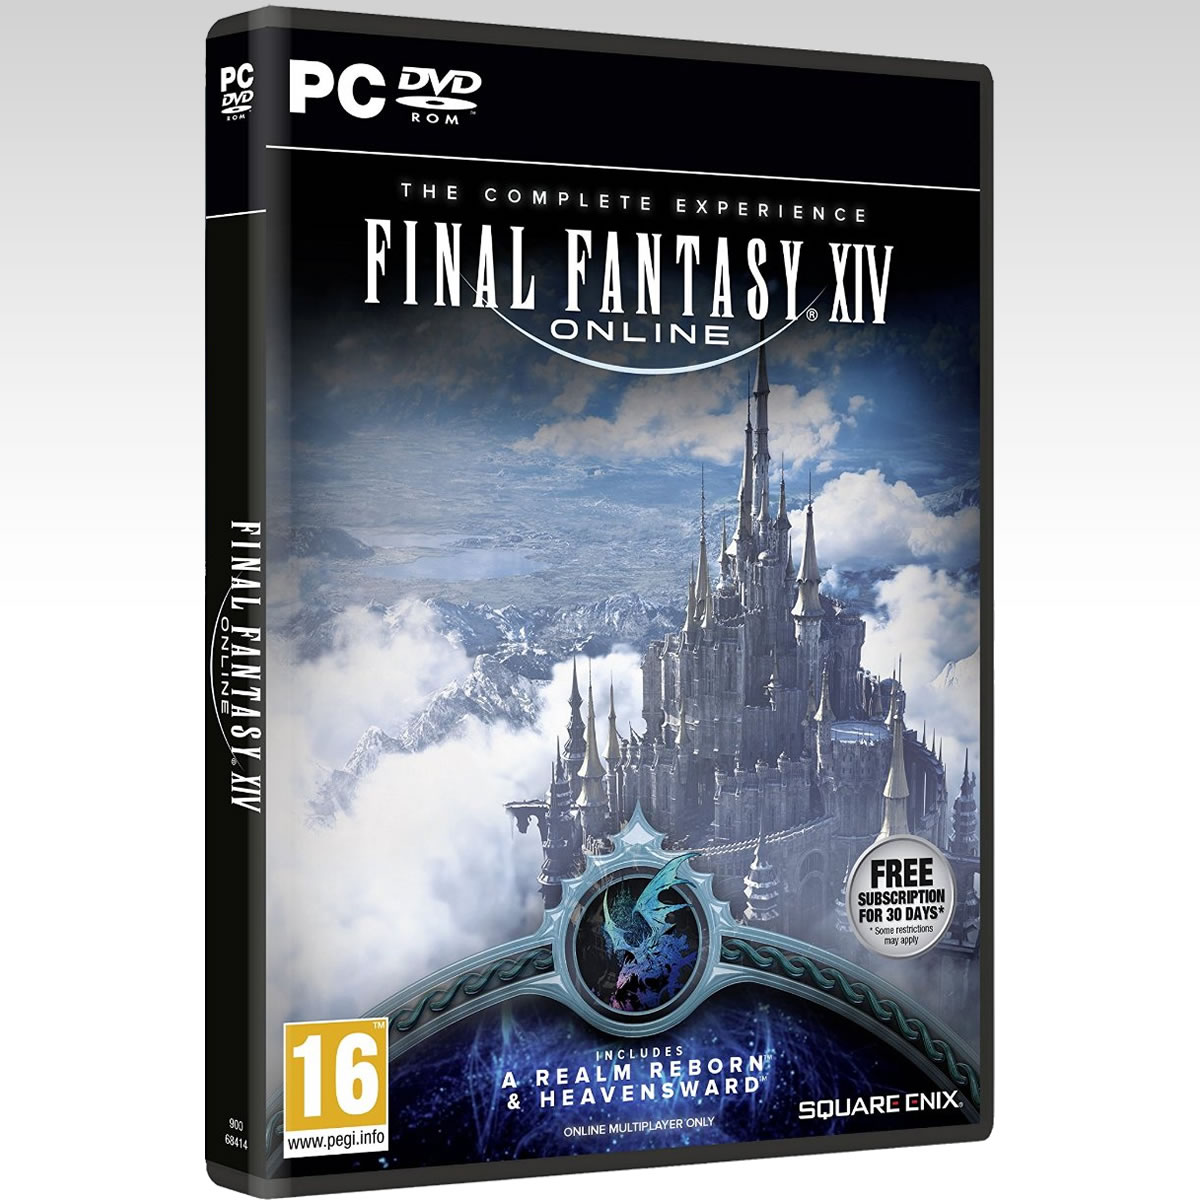 FINAL FANTASY XIV ONLINE: A REALM REBORN & HEAVENSWARD - THE COMPLETE EXPERIENCE (PC)